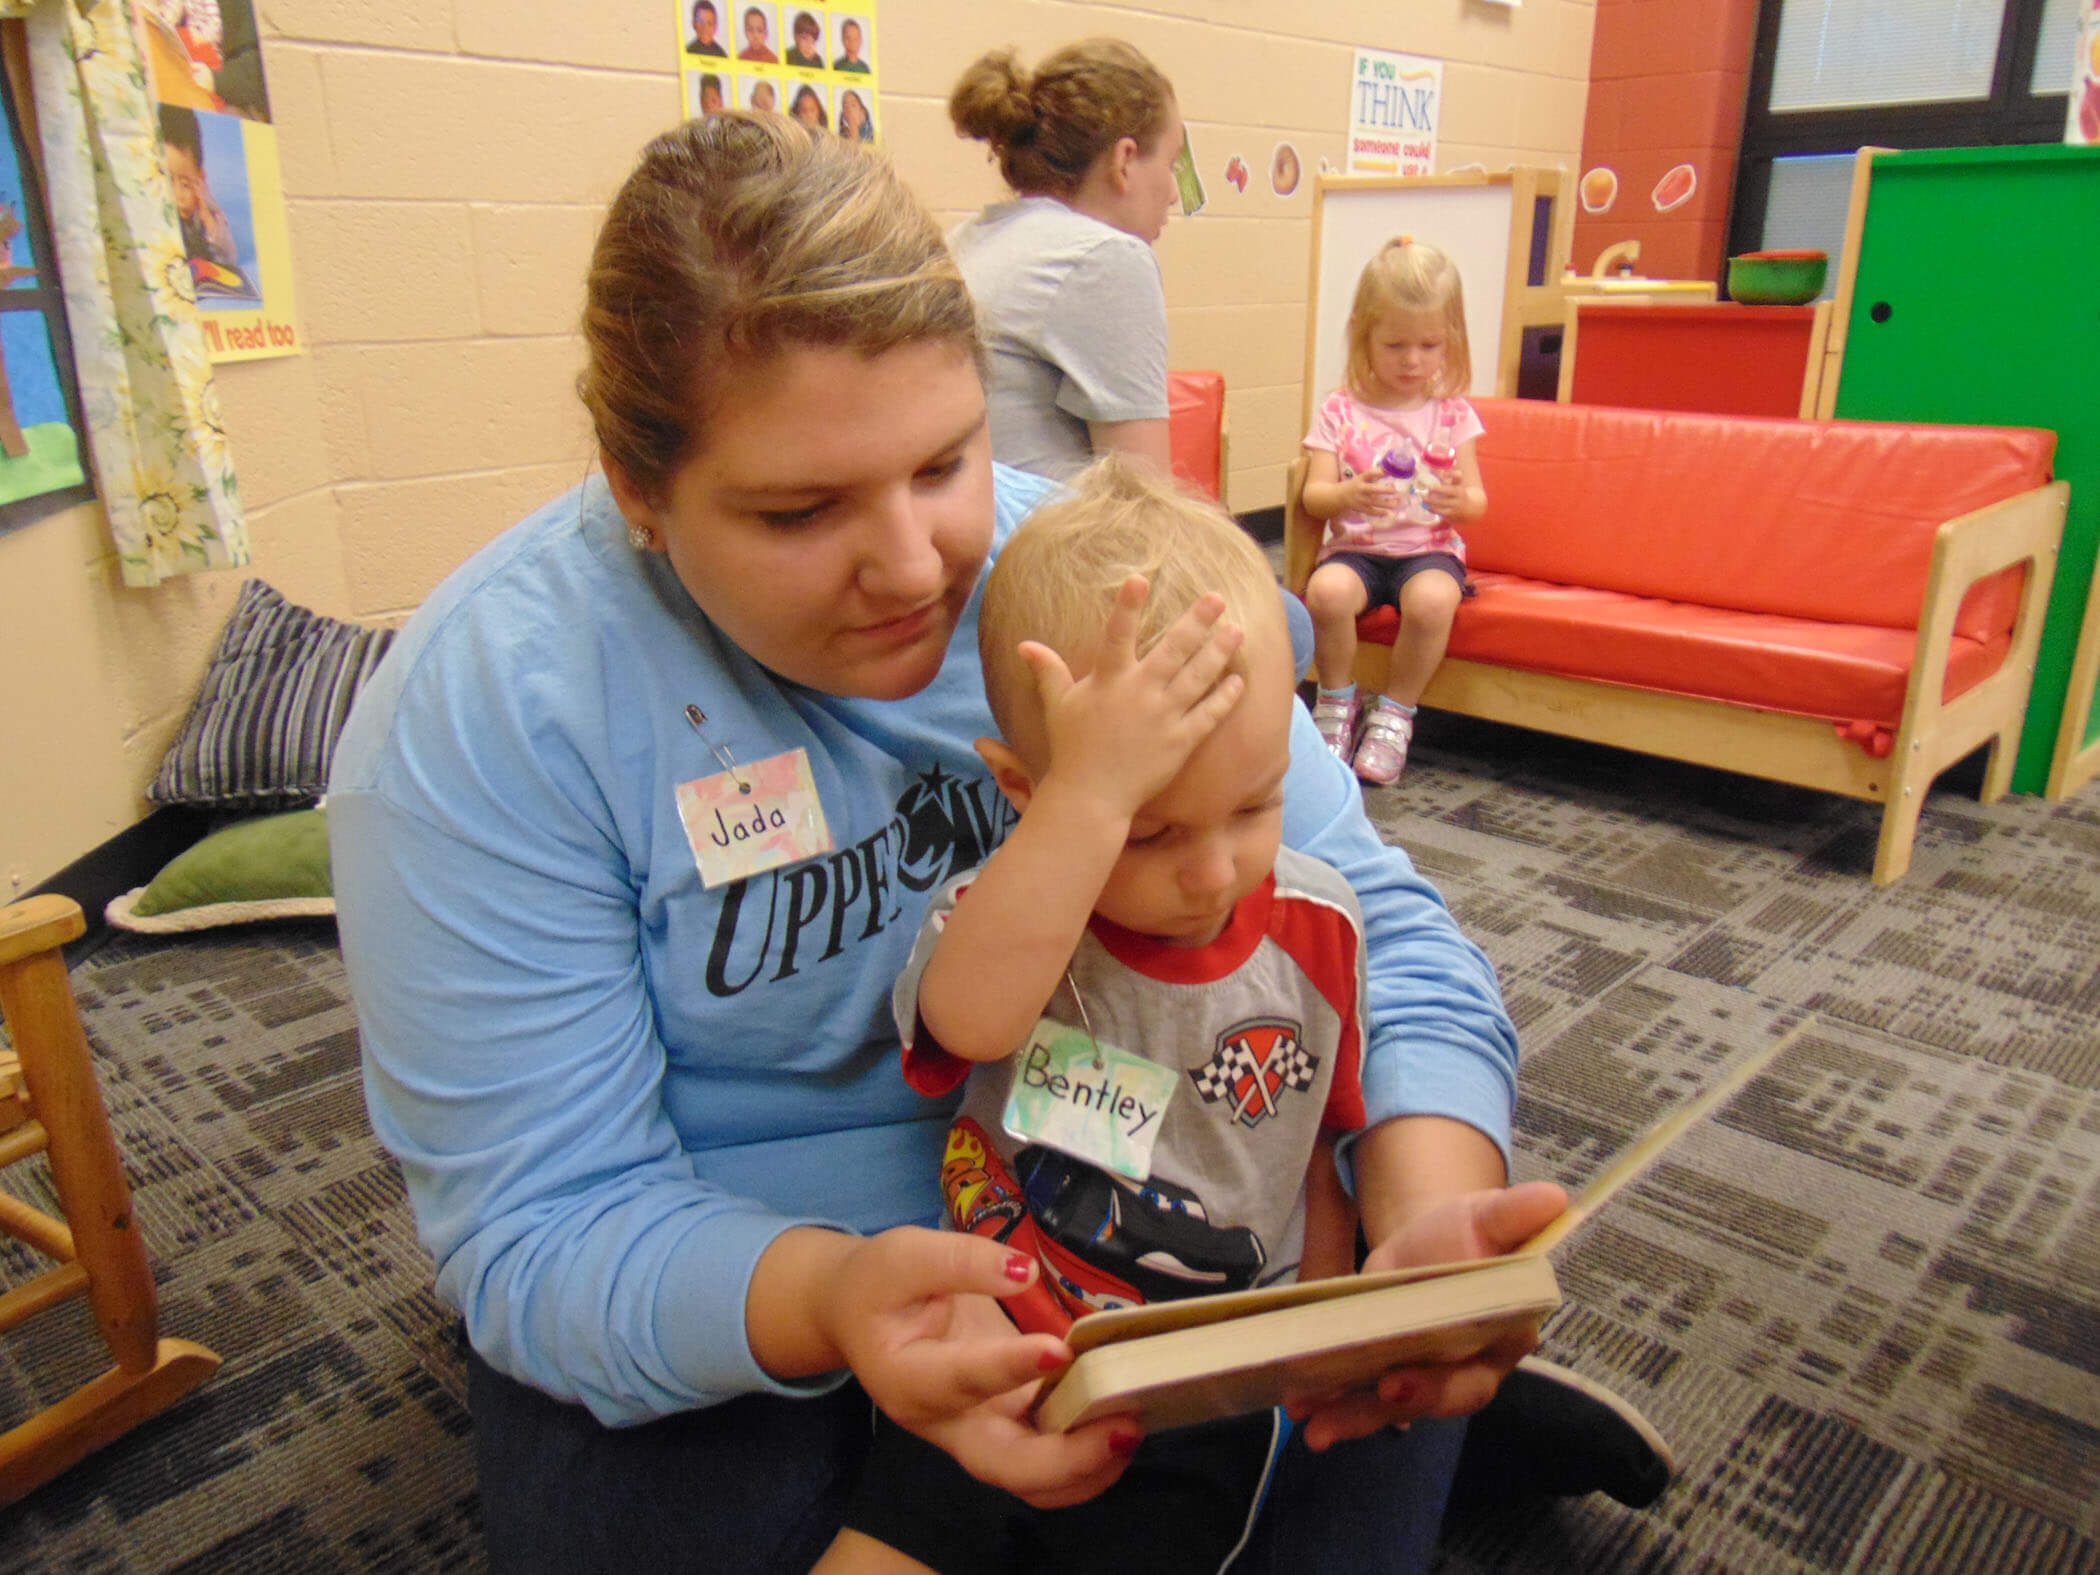 High School student teacher with young preschool student reading a book